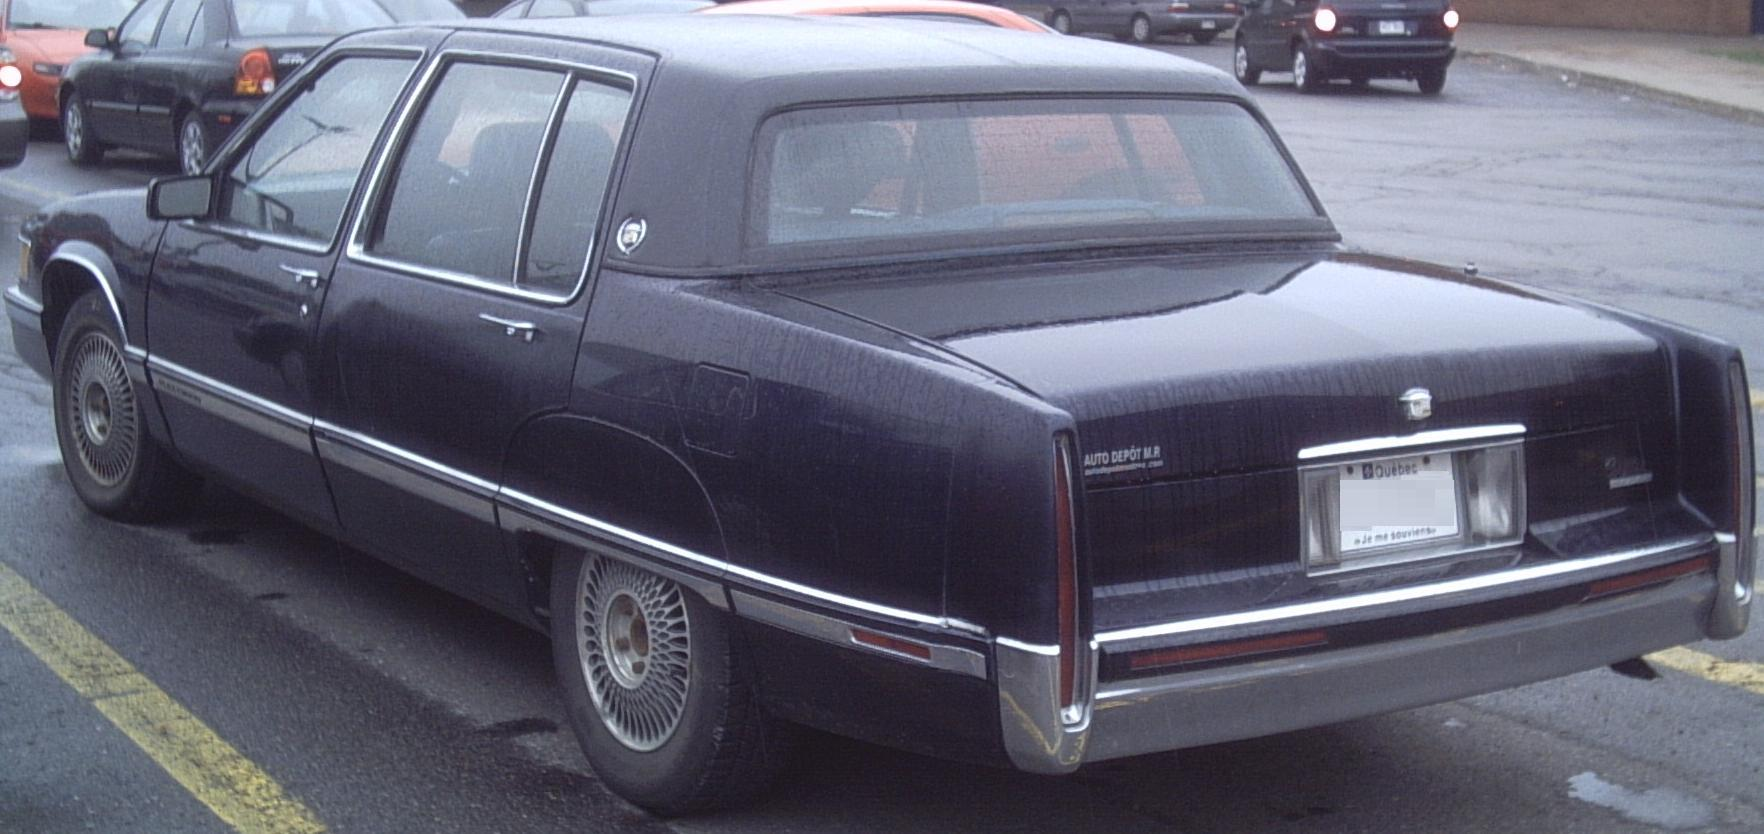 File:Caddy Sixty Special.JPG - Wikimedia Commons